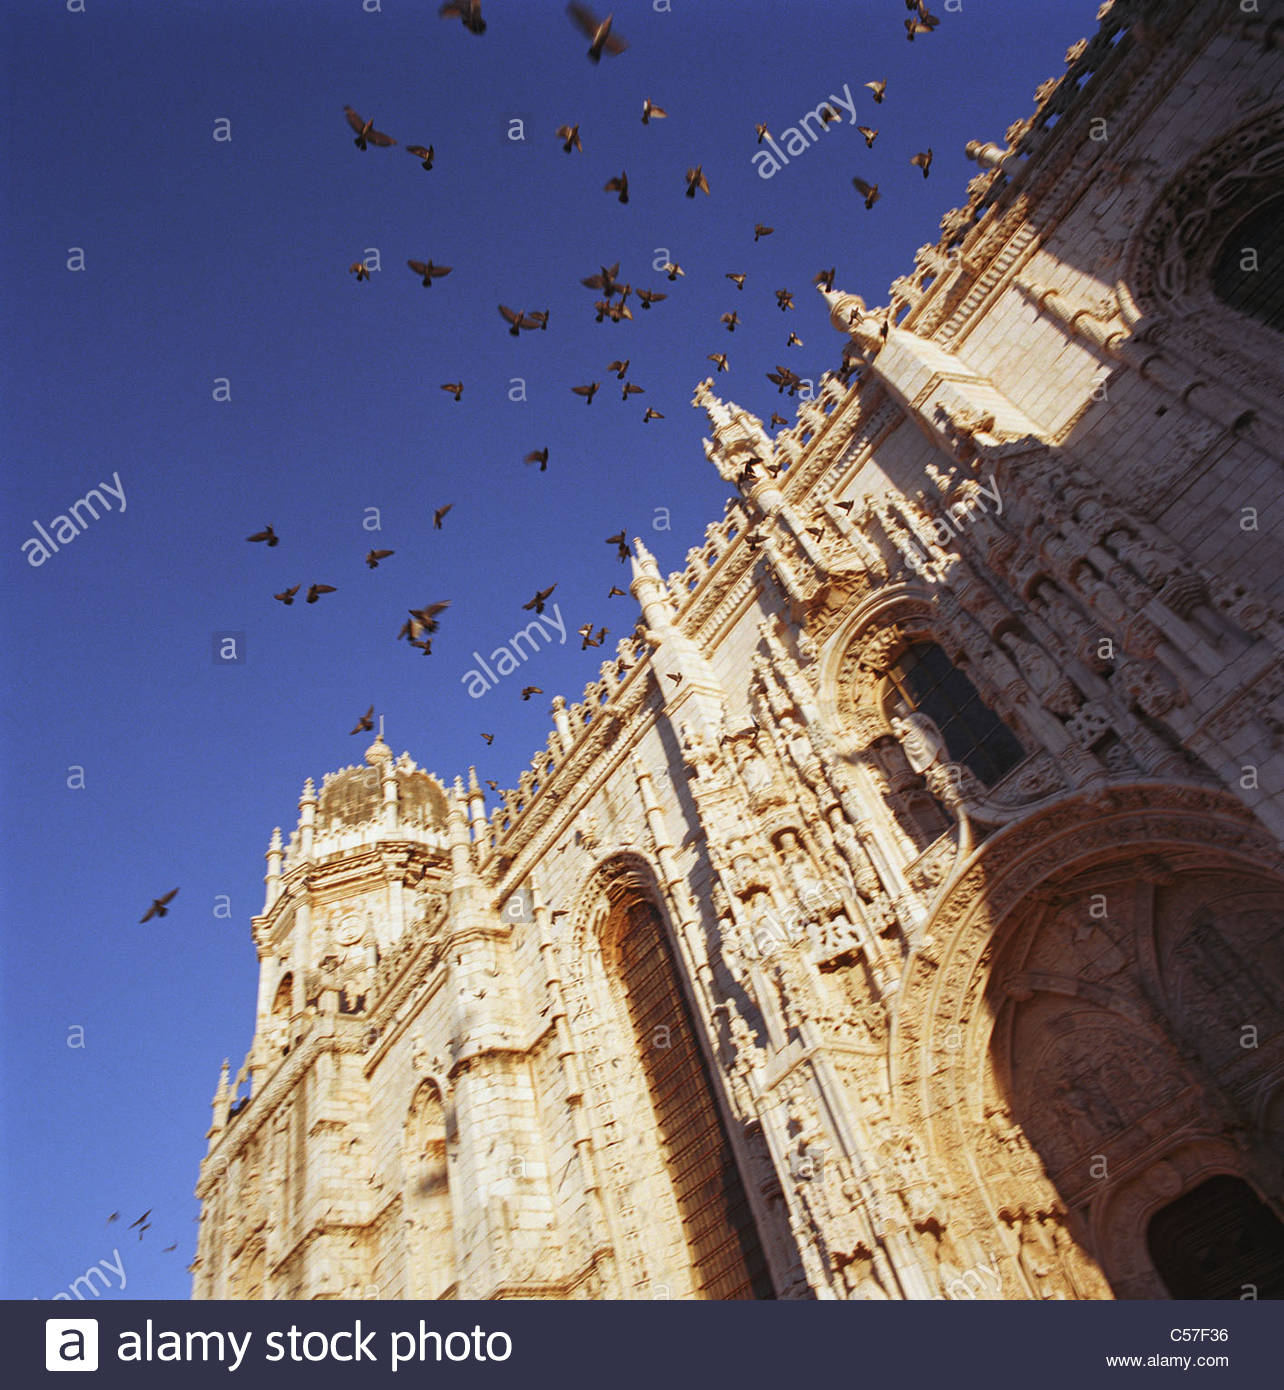 Birds flying over cathedral - Stock Image